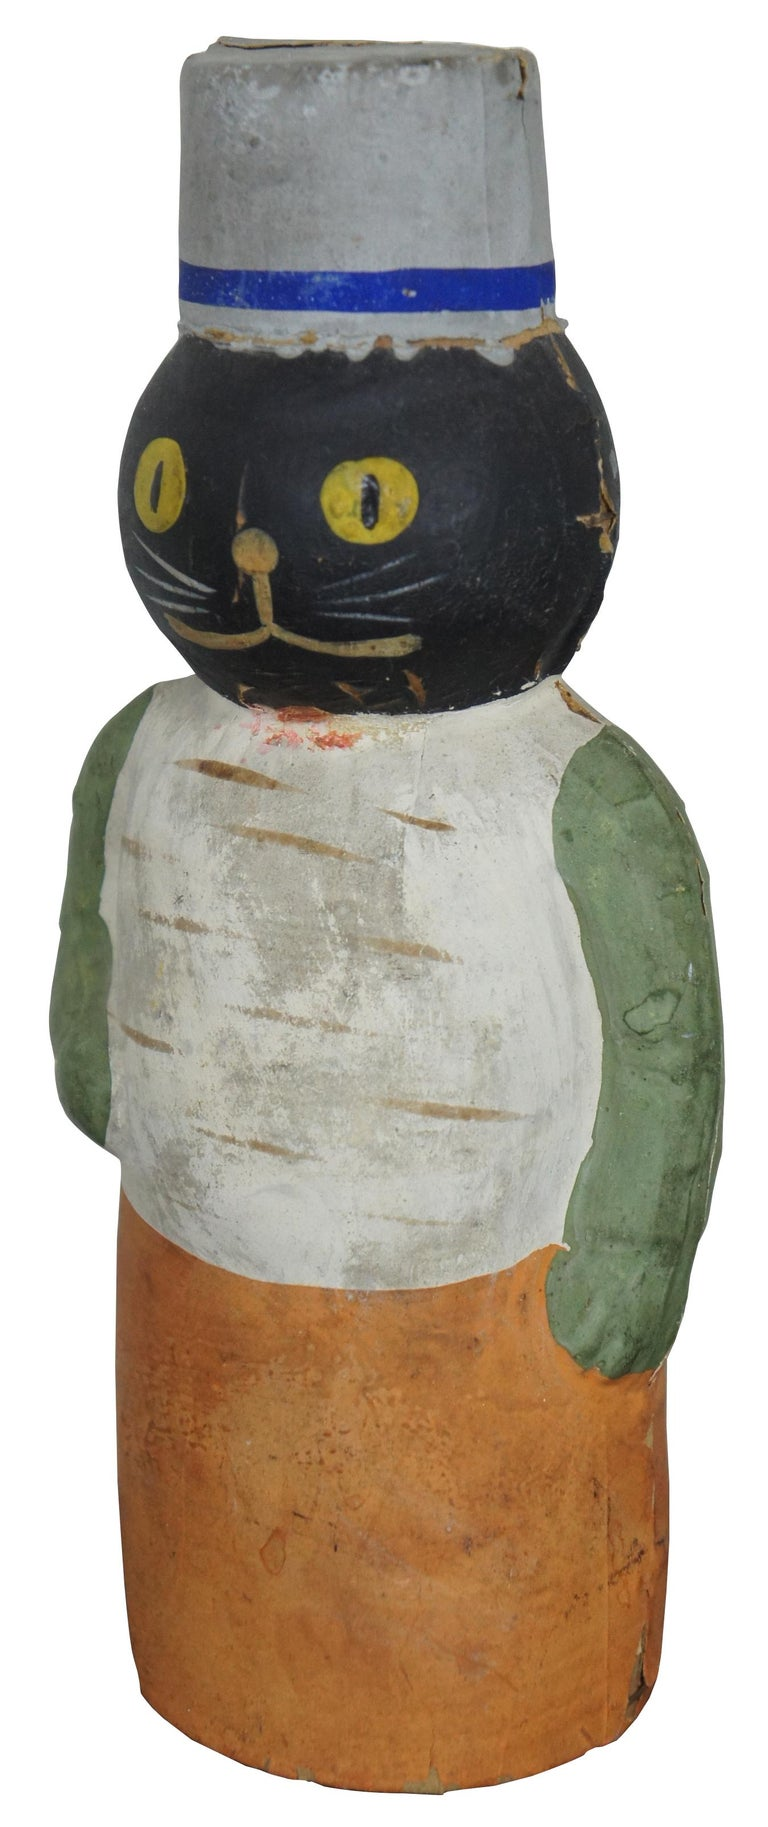 """Antique German papier mâché anthropomorphic candy container, shaped like a black cat with yellow eyes dressed in orange, green and white with a gray pill box hat, displayed in a wood base bell jar.  Measures: Bell jar 6.25"""" x 10.75"""" / cat 3.5"""" x"""